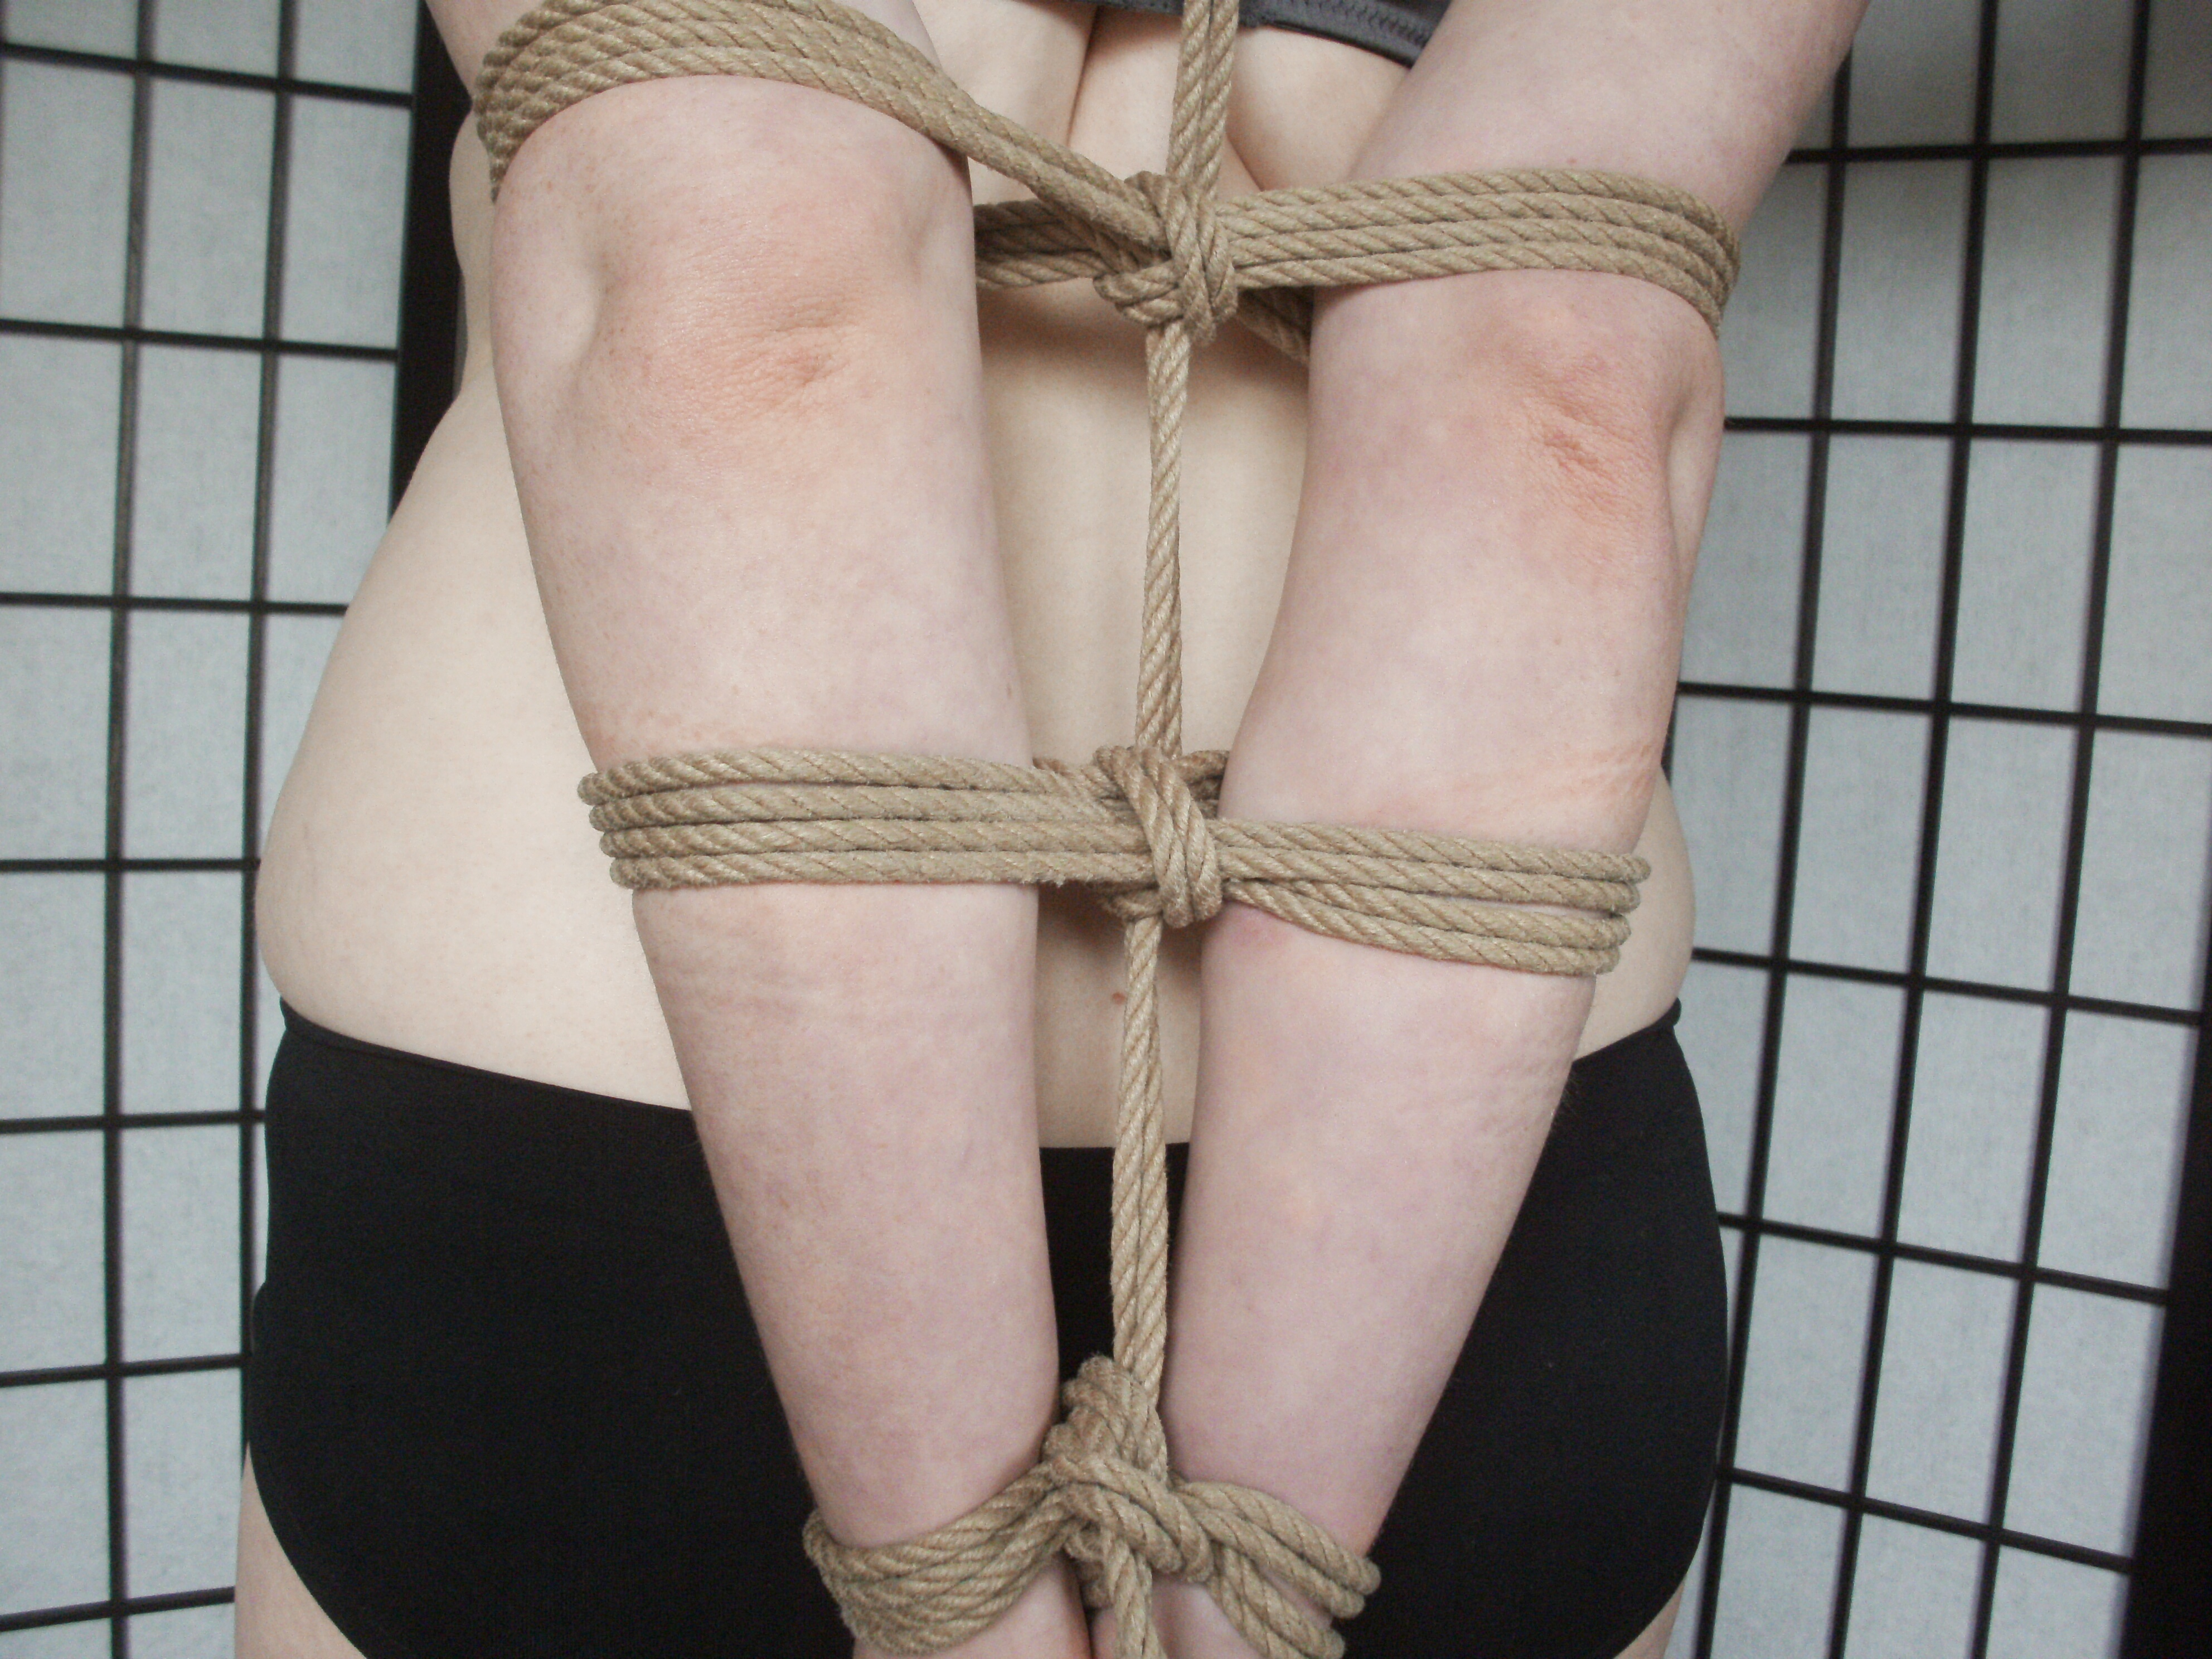 Bondage Rope How To 2